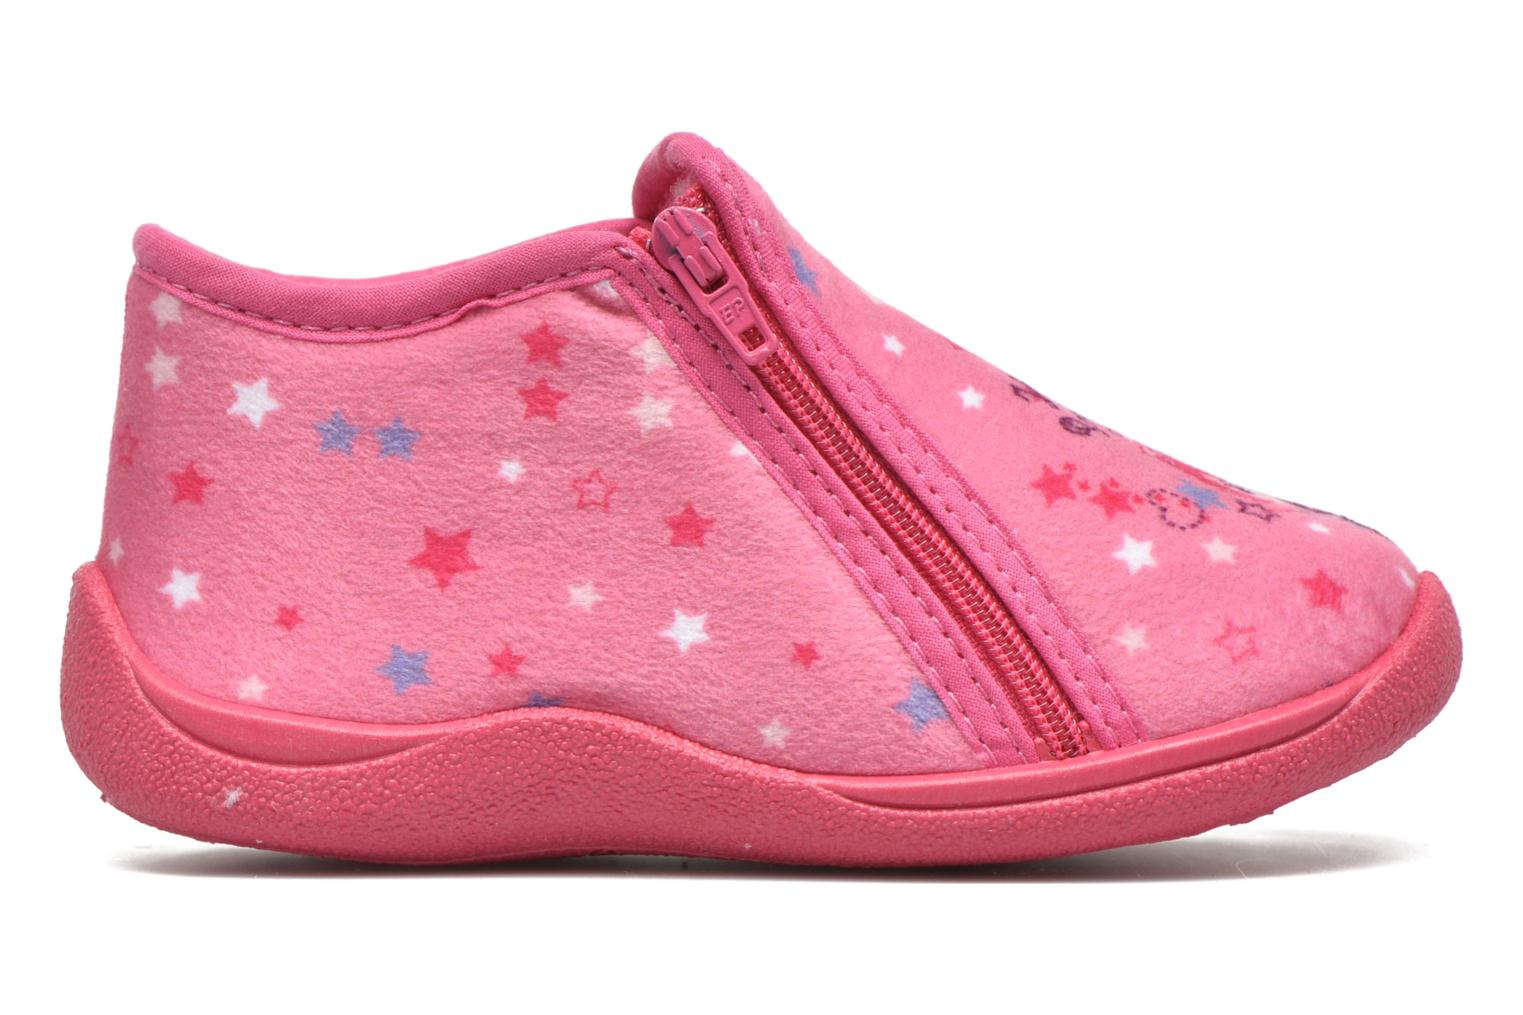 Chaussons Rondinaud GESSY Rose vue derrière